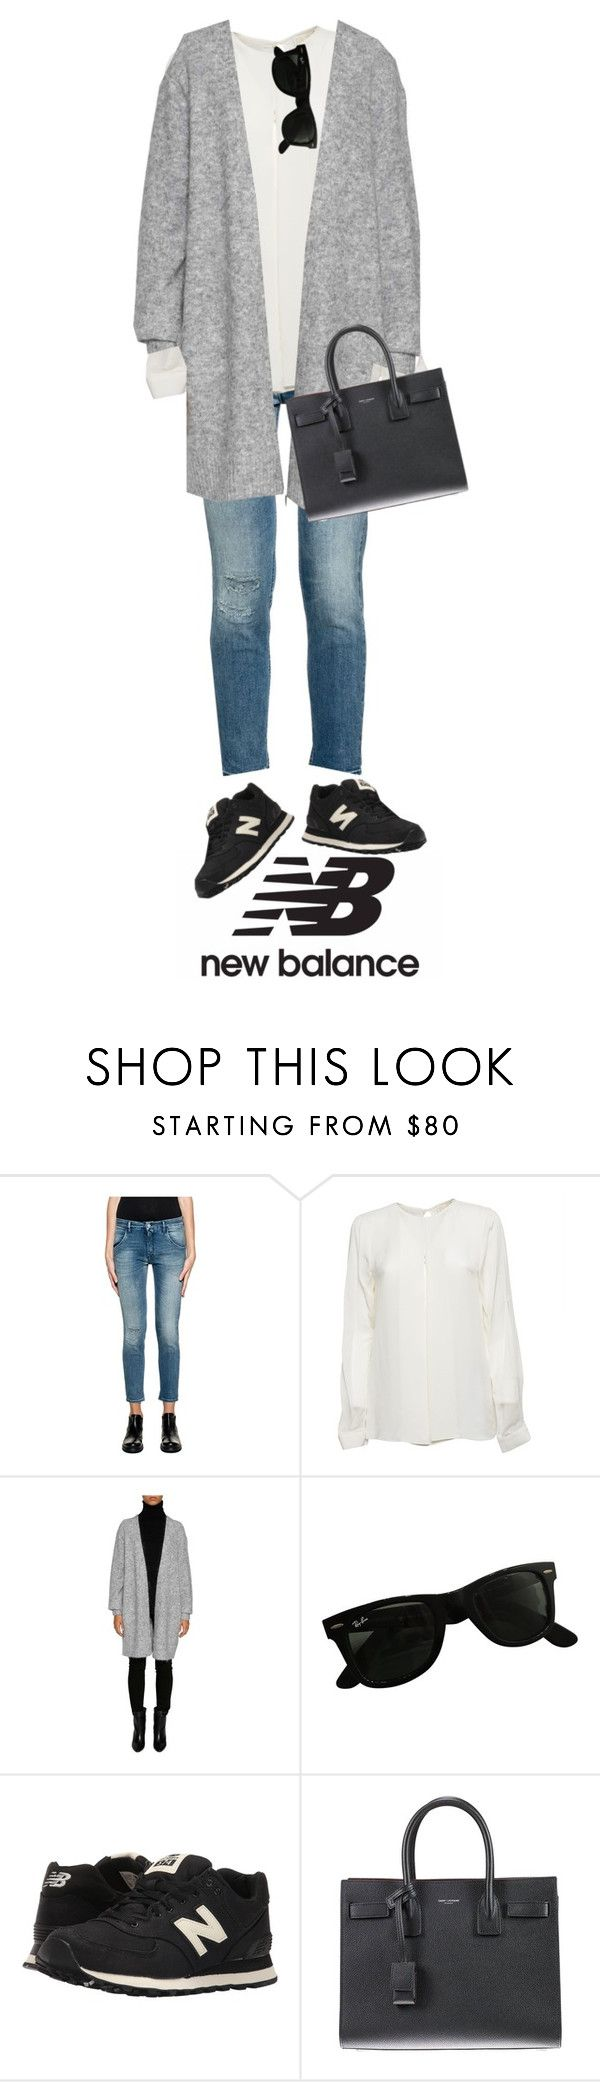 """""""Run the World in New Balance"""" by italist ❤ liked on Polyvore featuring CYCLE, Michael Kors, Acne Studios, Ray-Ban, New Balance Classics, Yves Saint Laurent and NewBalance"""